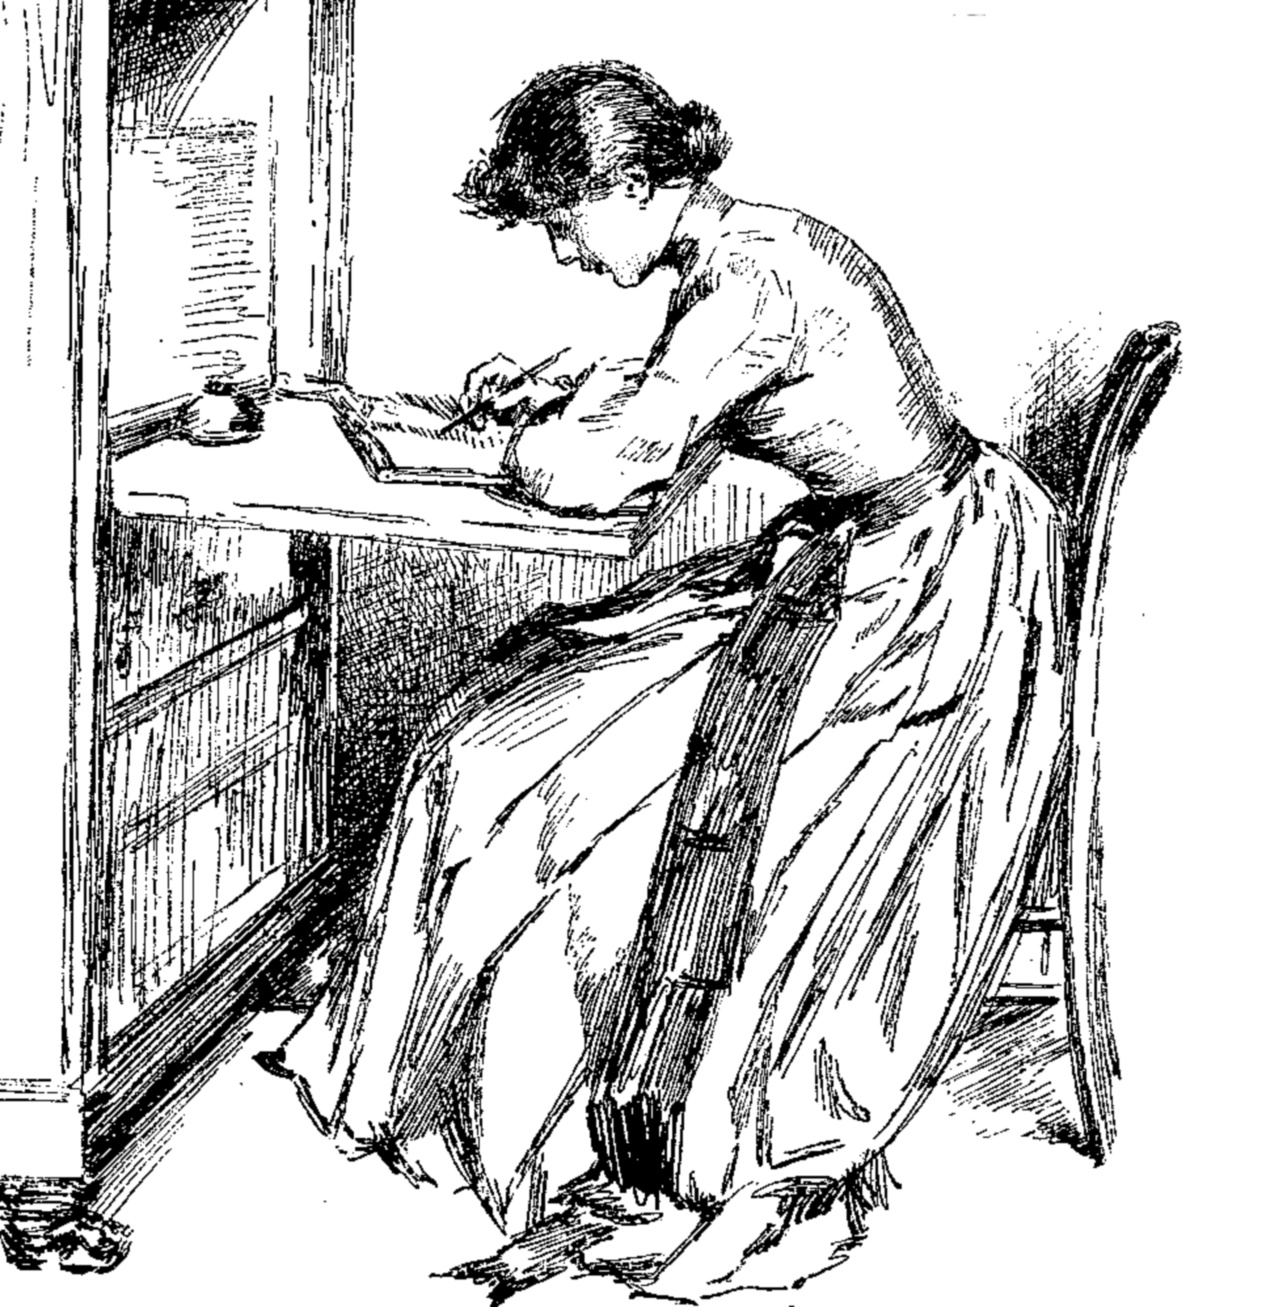 Mindy S Muses Writing About Writing